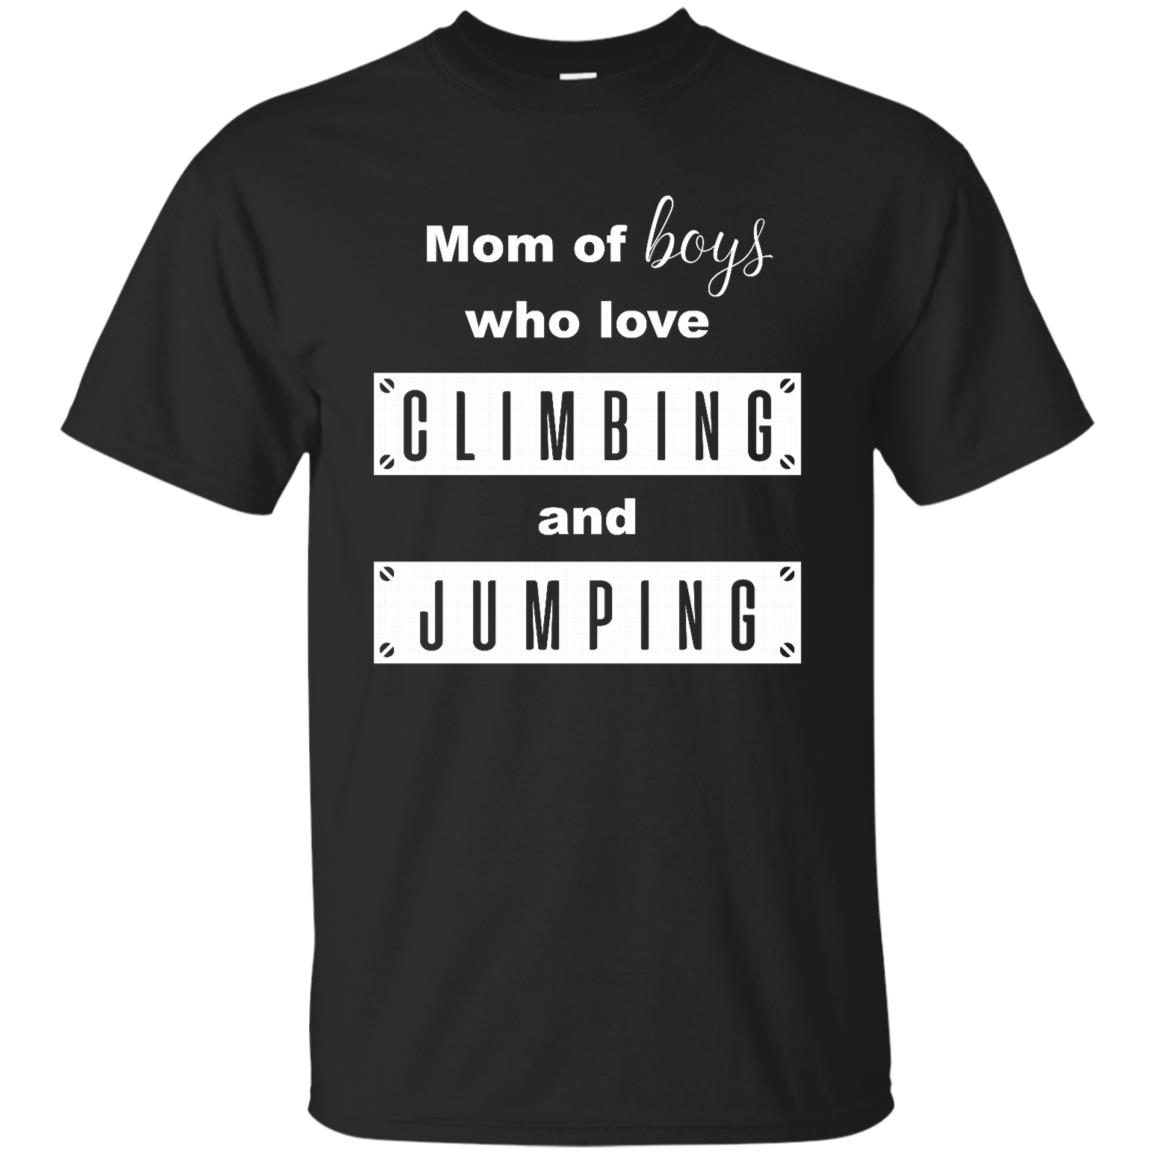 Mom of Boys who love climbing and jumping black red Unisex Short Sleeve